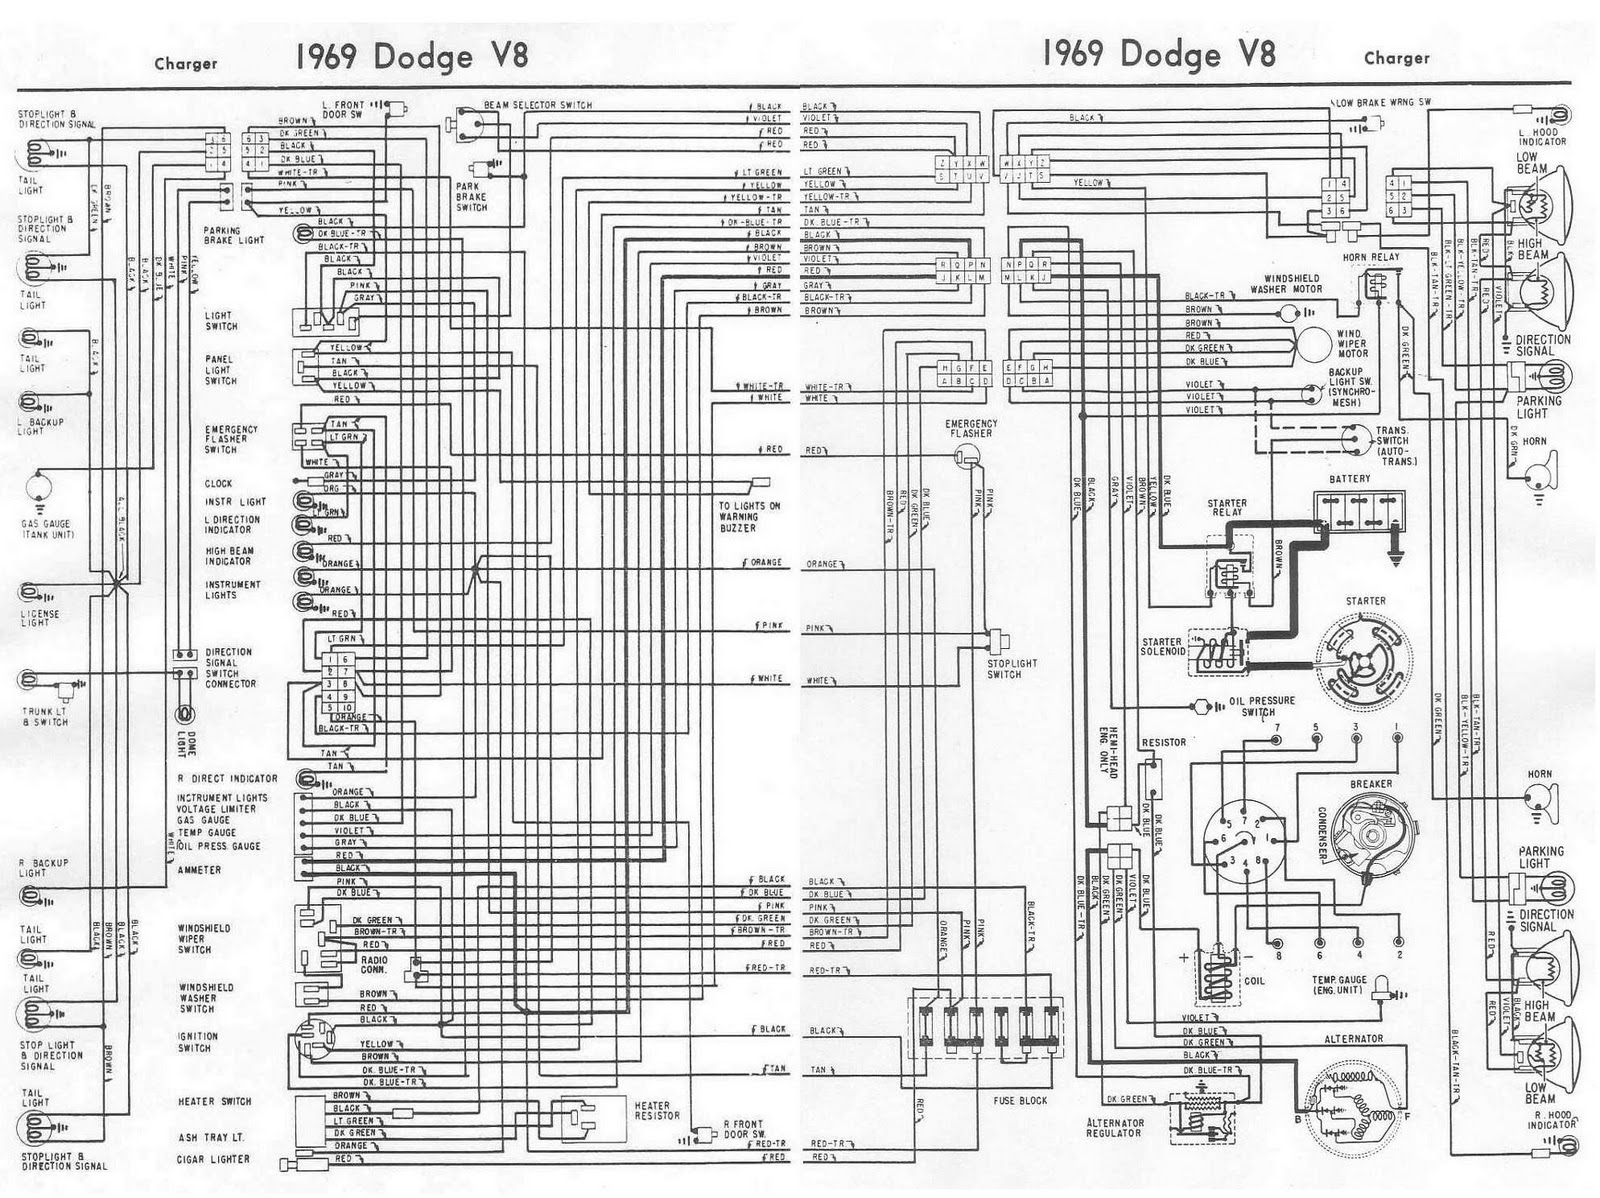 1967 Dodge Dart Gt Wiring Diagram | Wiring Diagram on 1988 mustang wiring diagram, 67 charger wiring diagram, 1967 charger headlights, 1983 mustang wiring diagram, 1969 barracuda wiring diagram, 1984 mustang wiring diagram, 1968 charger wiring diagram, 1967 charger automatic transmission, 1970 challenger wiring diagram, 1986 mustang wiring diagram, 1995 mustang wiring diagram, 1970 charger wiring diagram, 1966 charger wiring diagram, 1969 charger wiring diagram, 1970 dart wiring diagram, 1979 mustang wiring diagram, 1968 roadrunner wiring diagram, 1967 charger seats, 1973 charger wiring diagram, 1969 roadrunner wiring diagram,